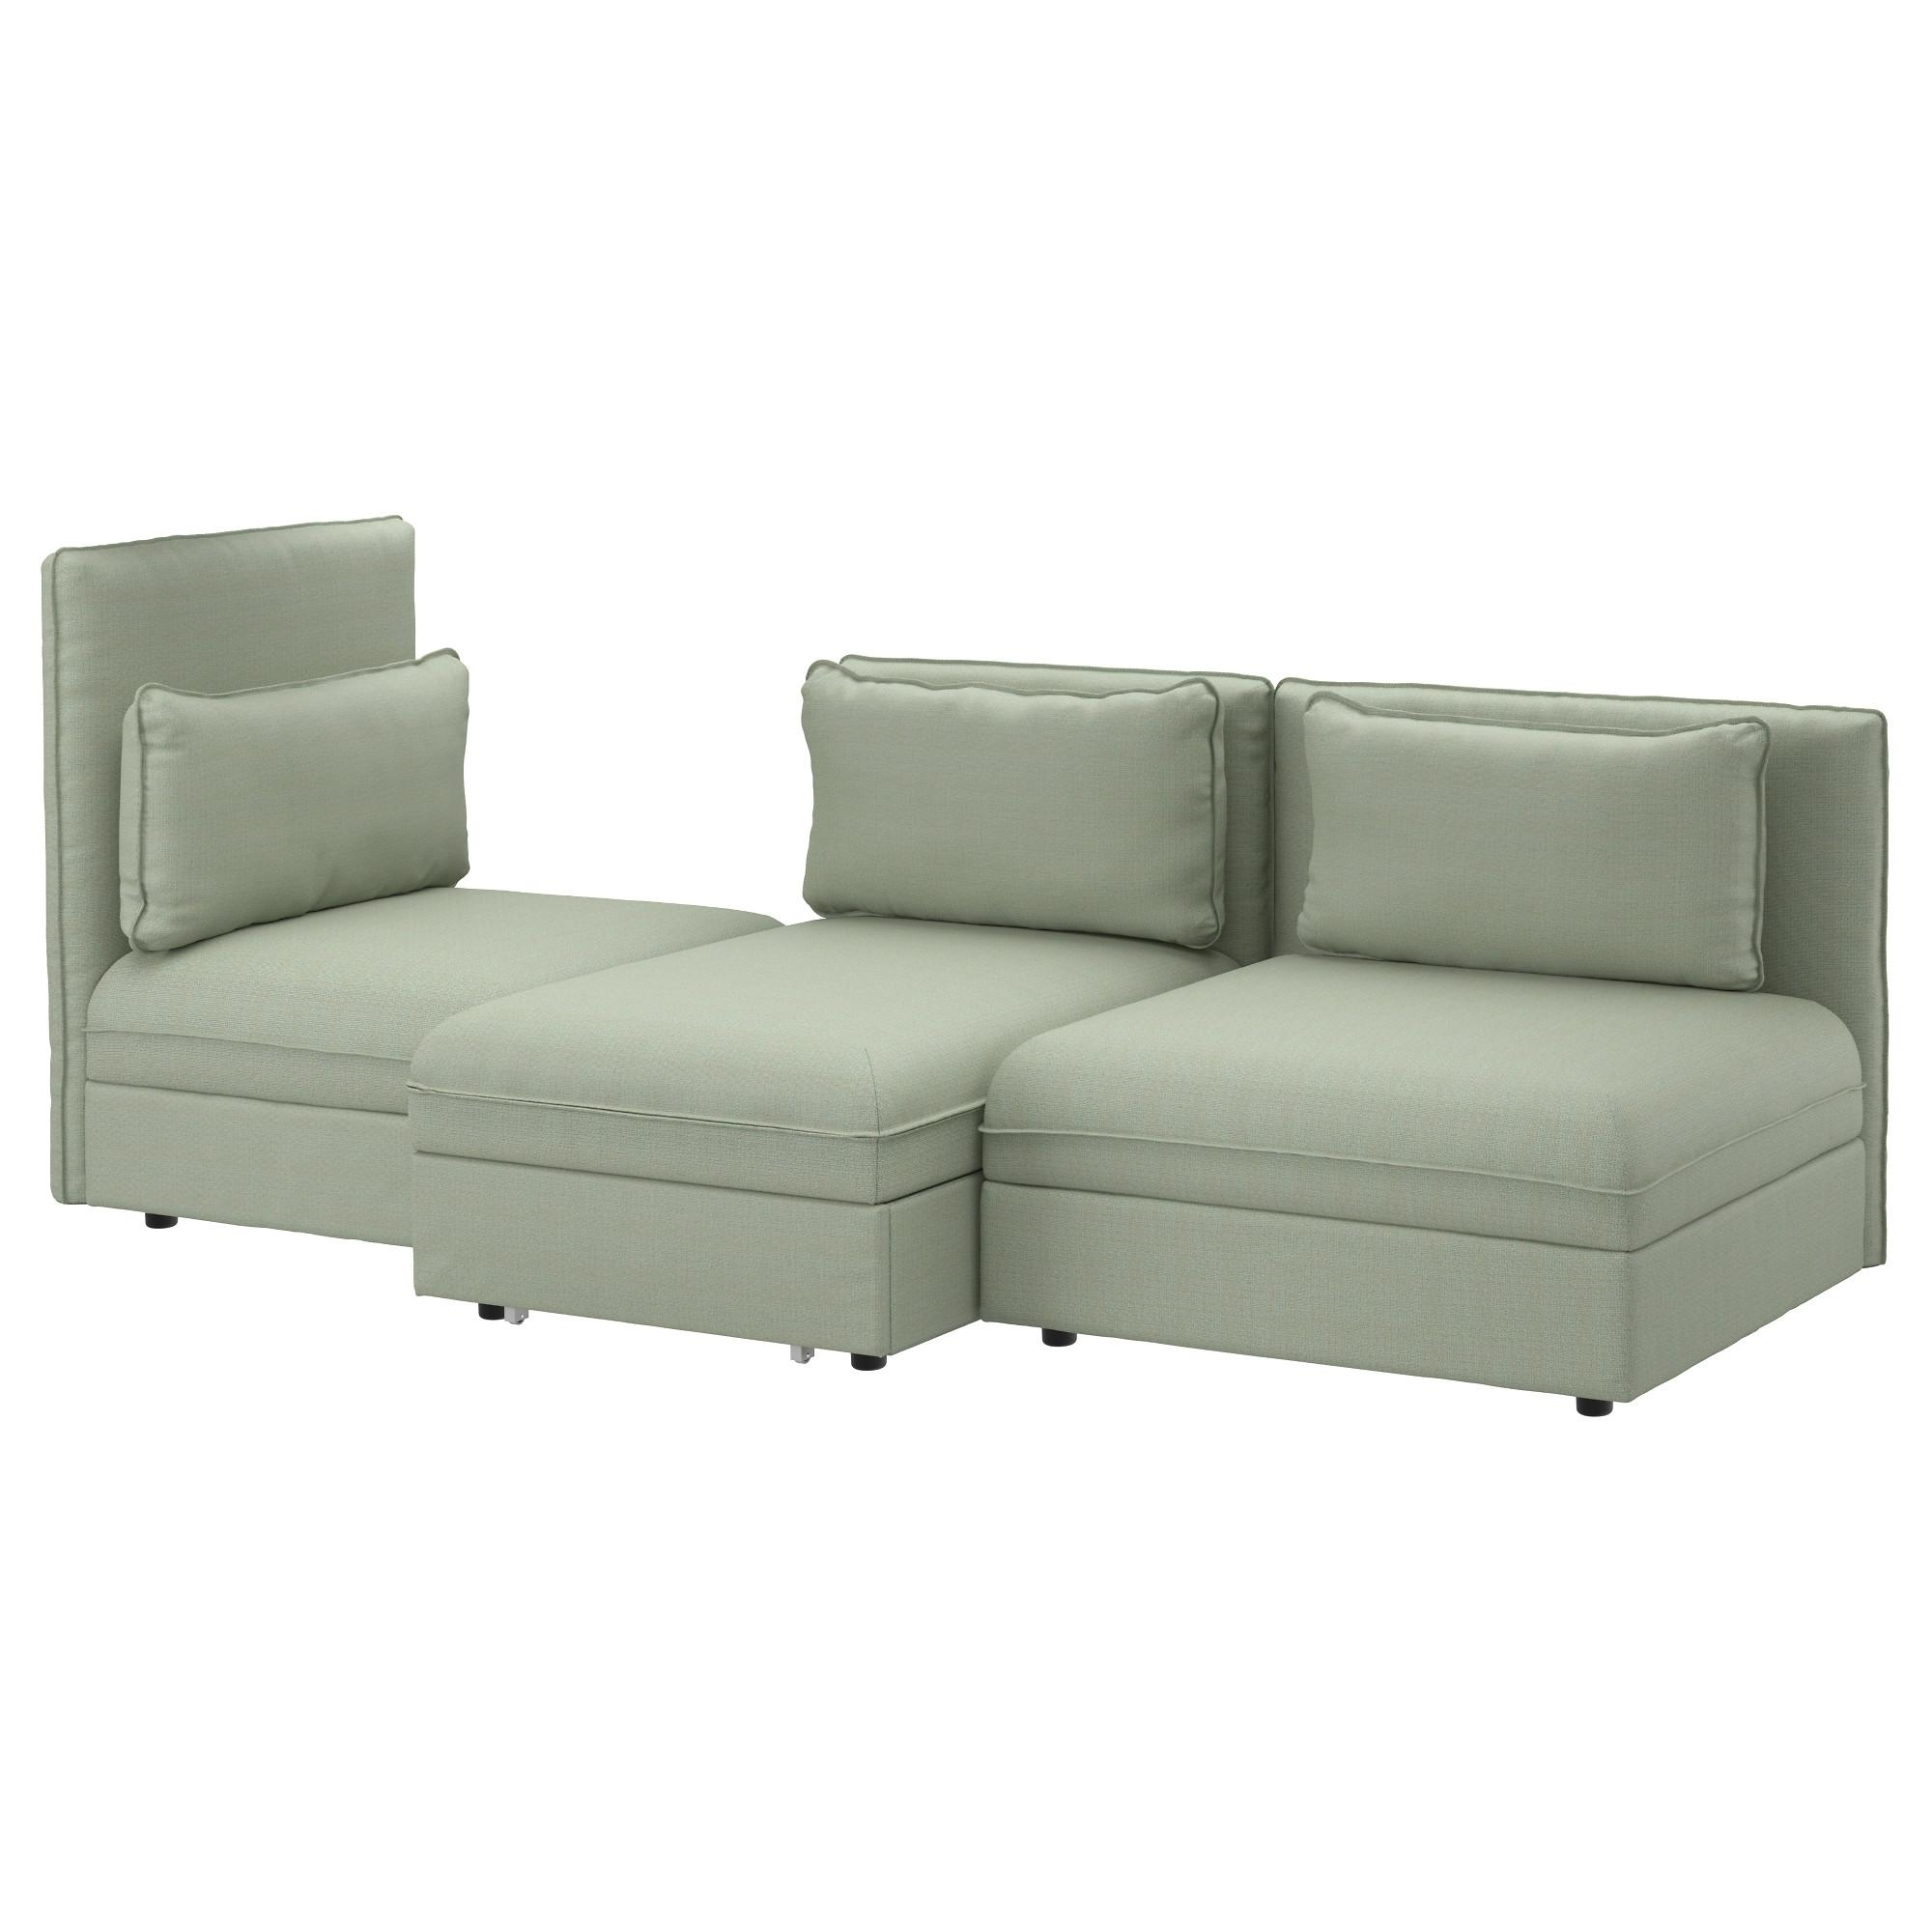 Sofa Beds & Futons – Ikea Throughout Ikea Sleeper Sofa Sectional (Image 16 of 20)